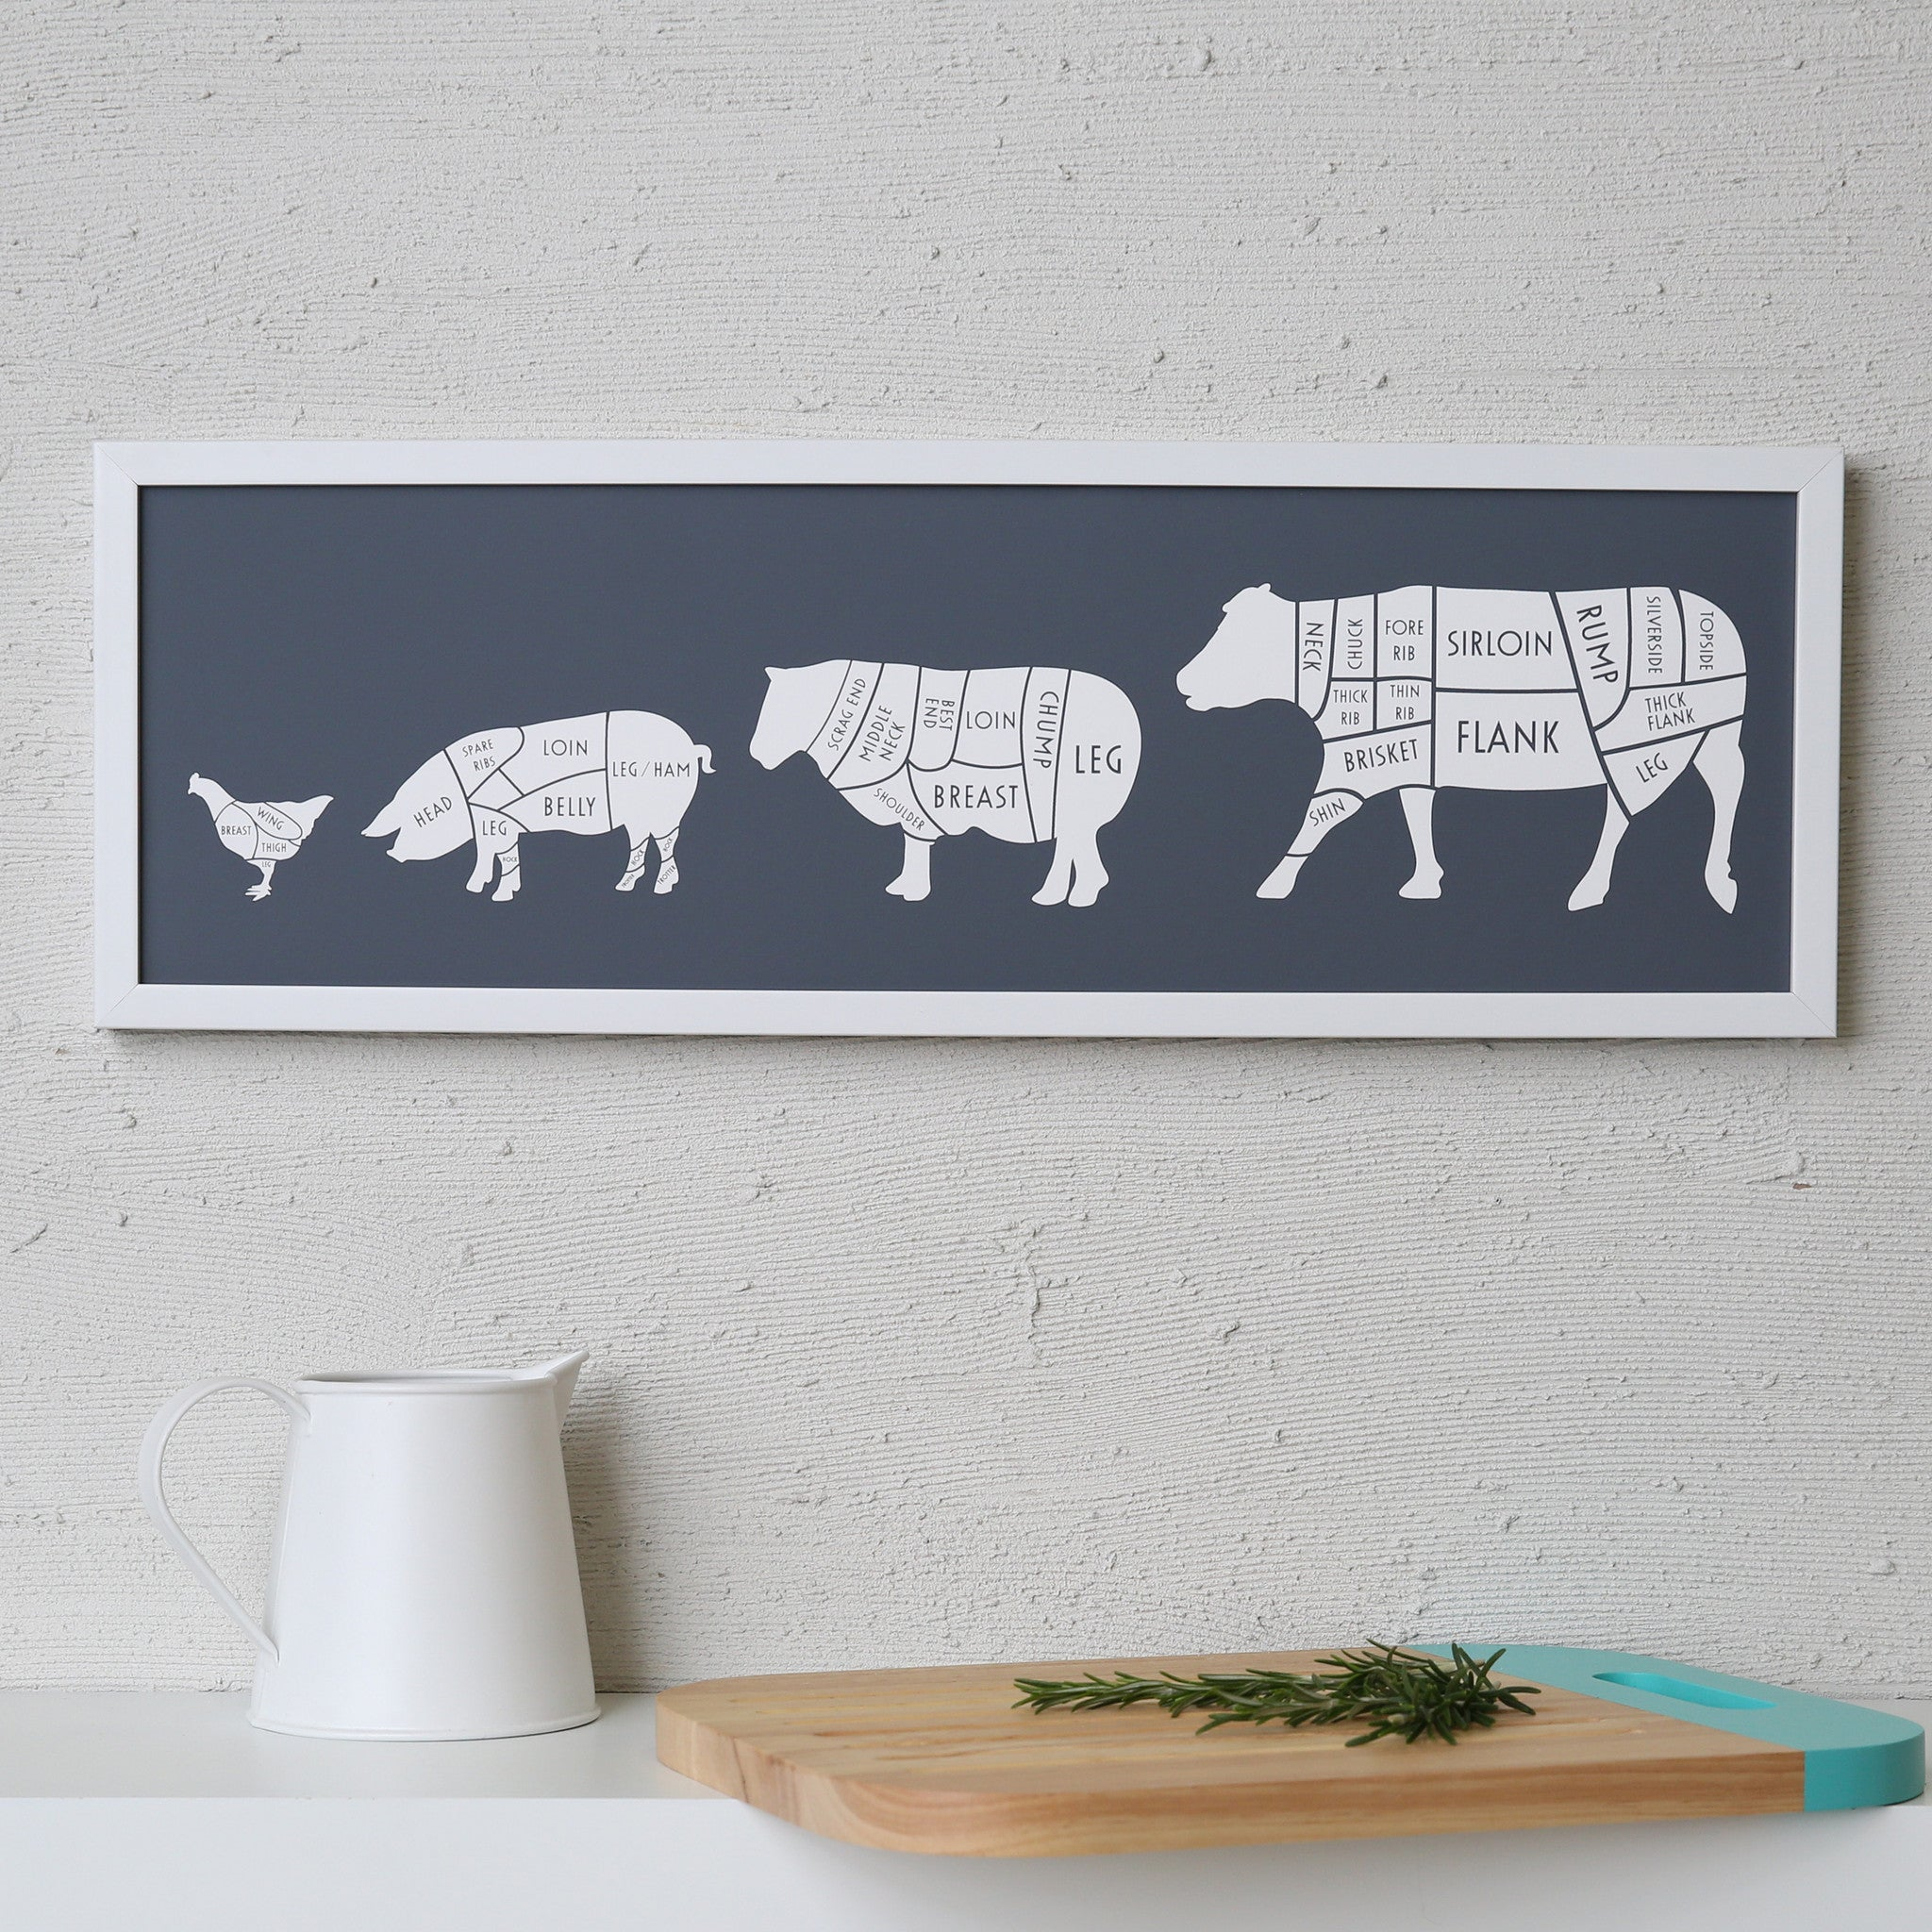 Butcher's Kitchen quattro print - coconutgrass